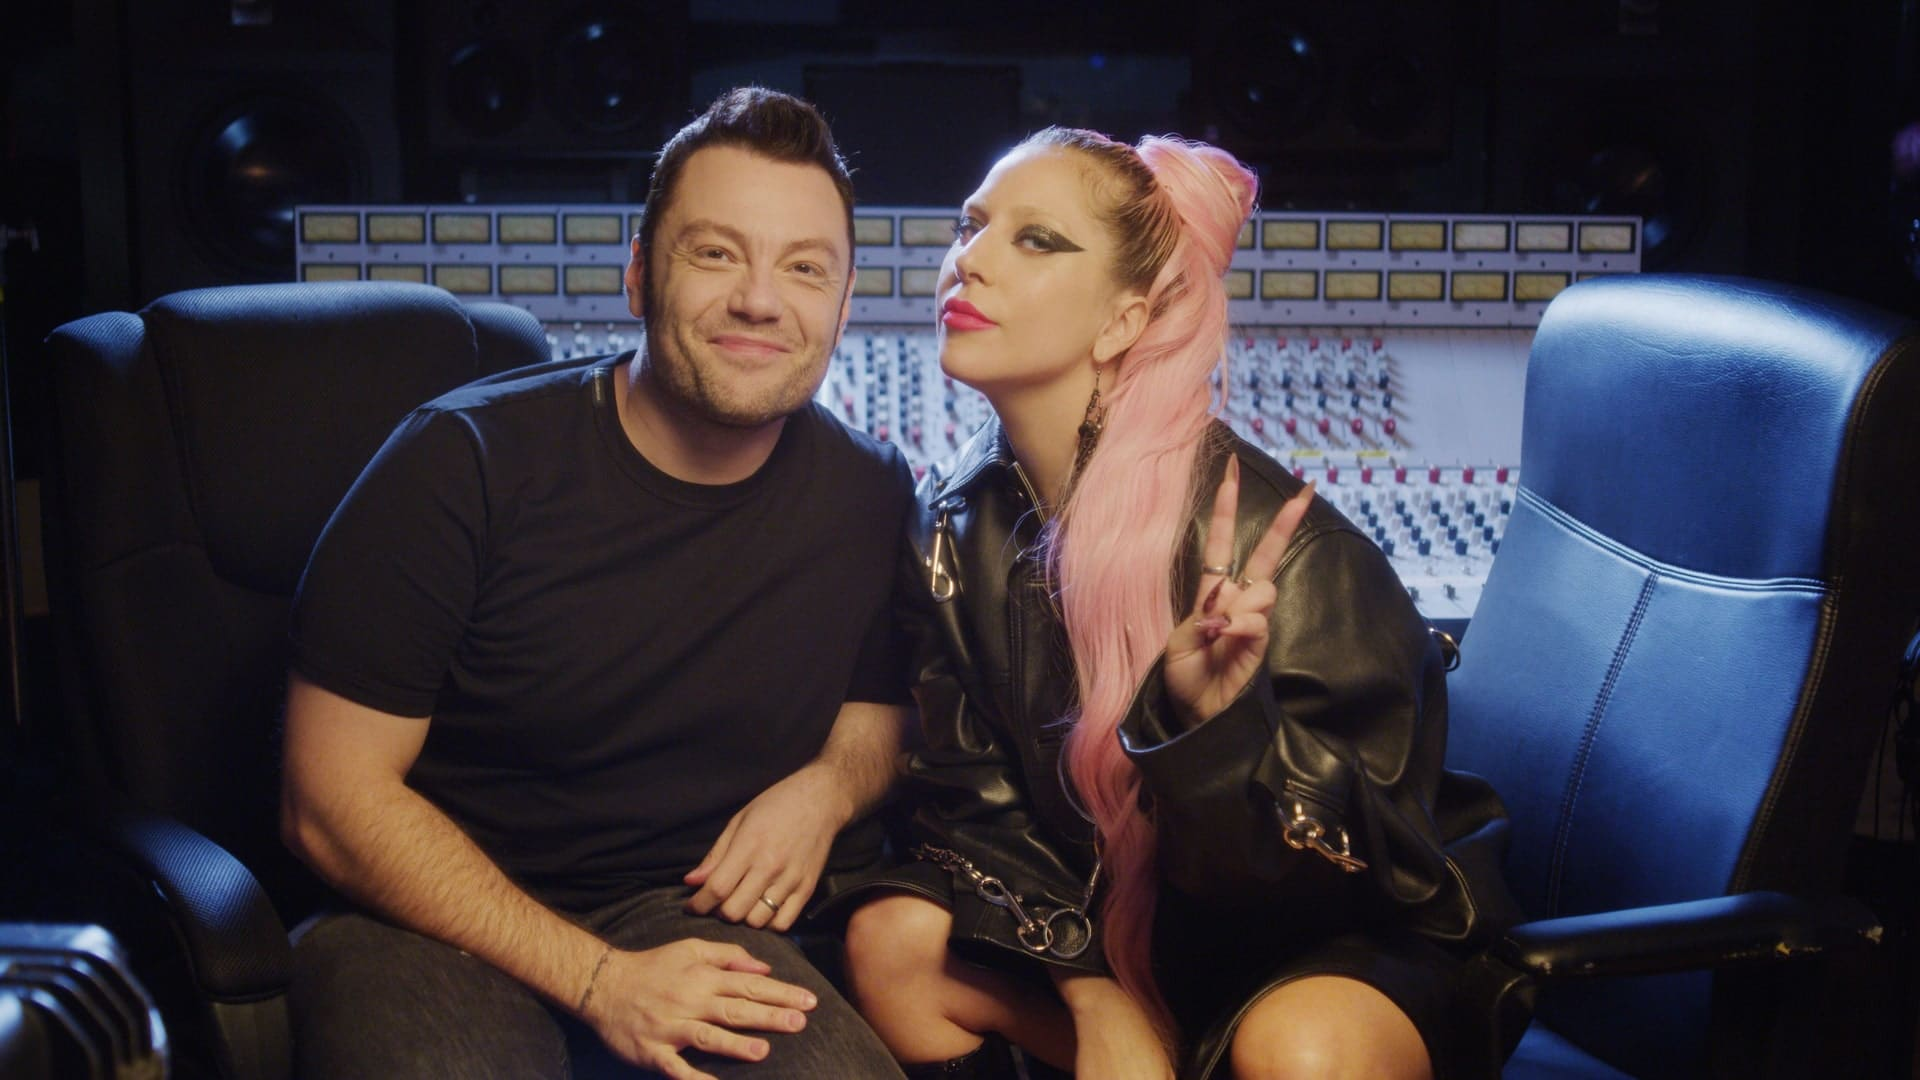 Tiziano Ferro interviews Lady Gaga